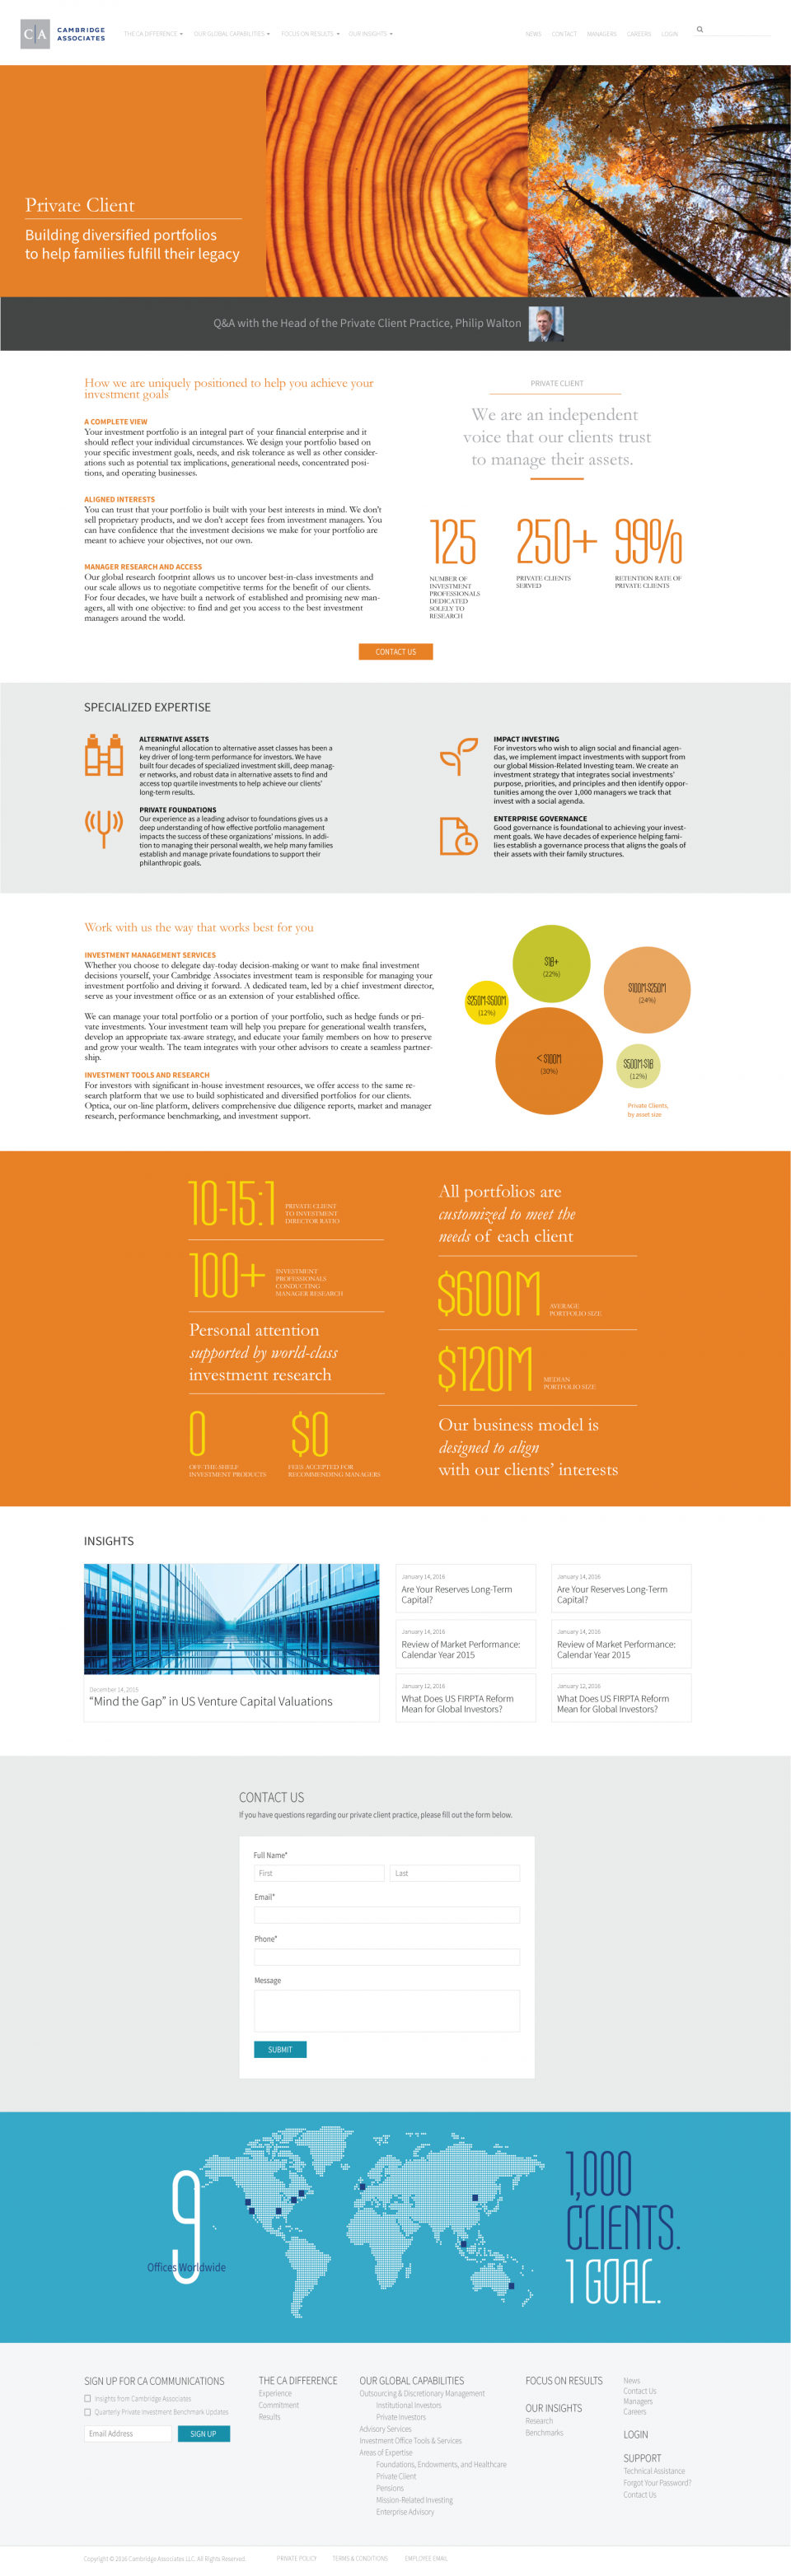 Cambridge Associates Private Client Landing Page